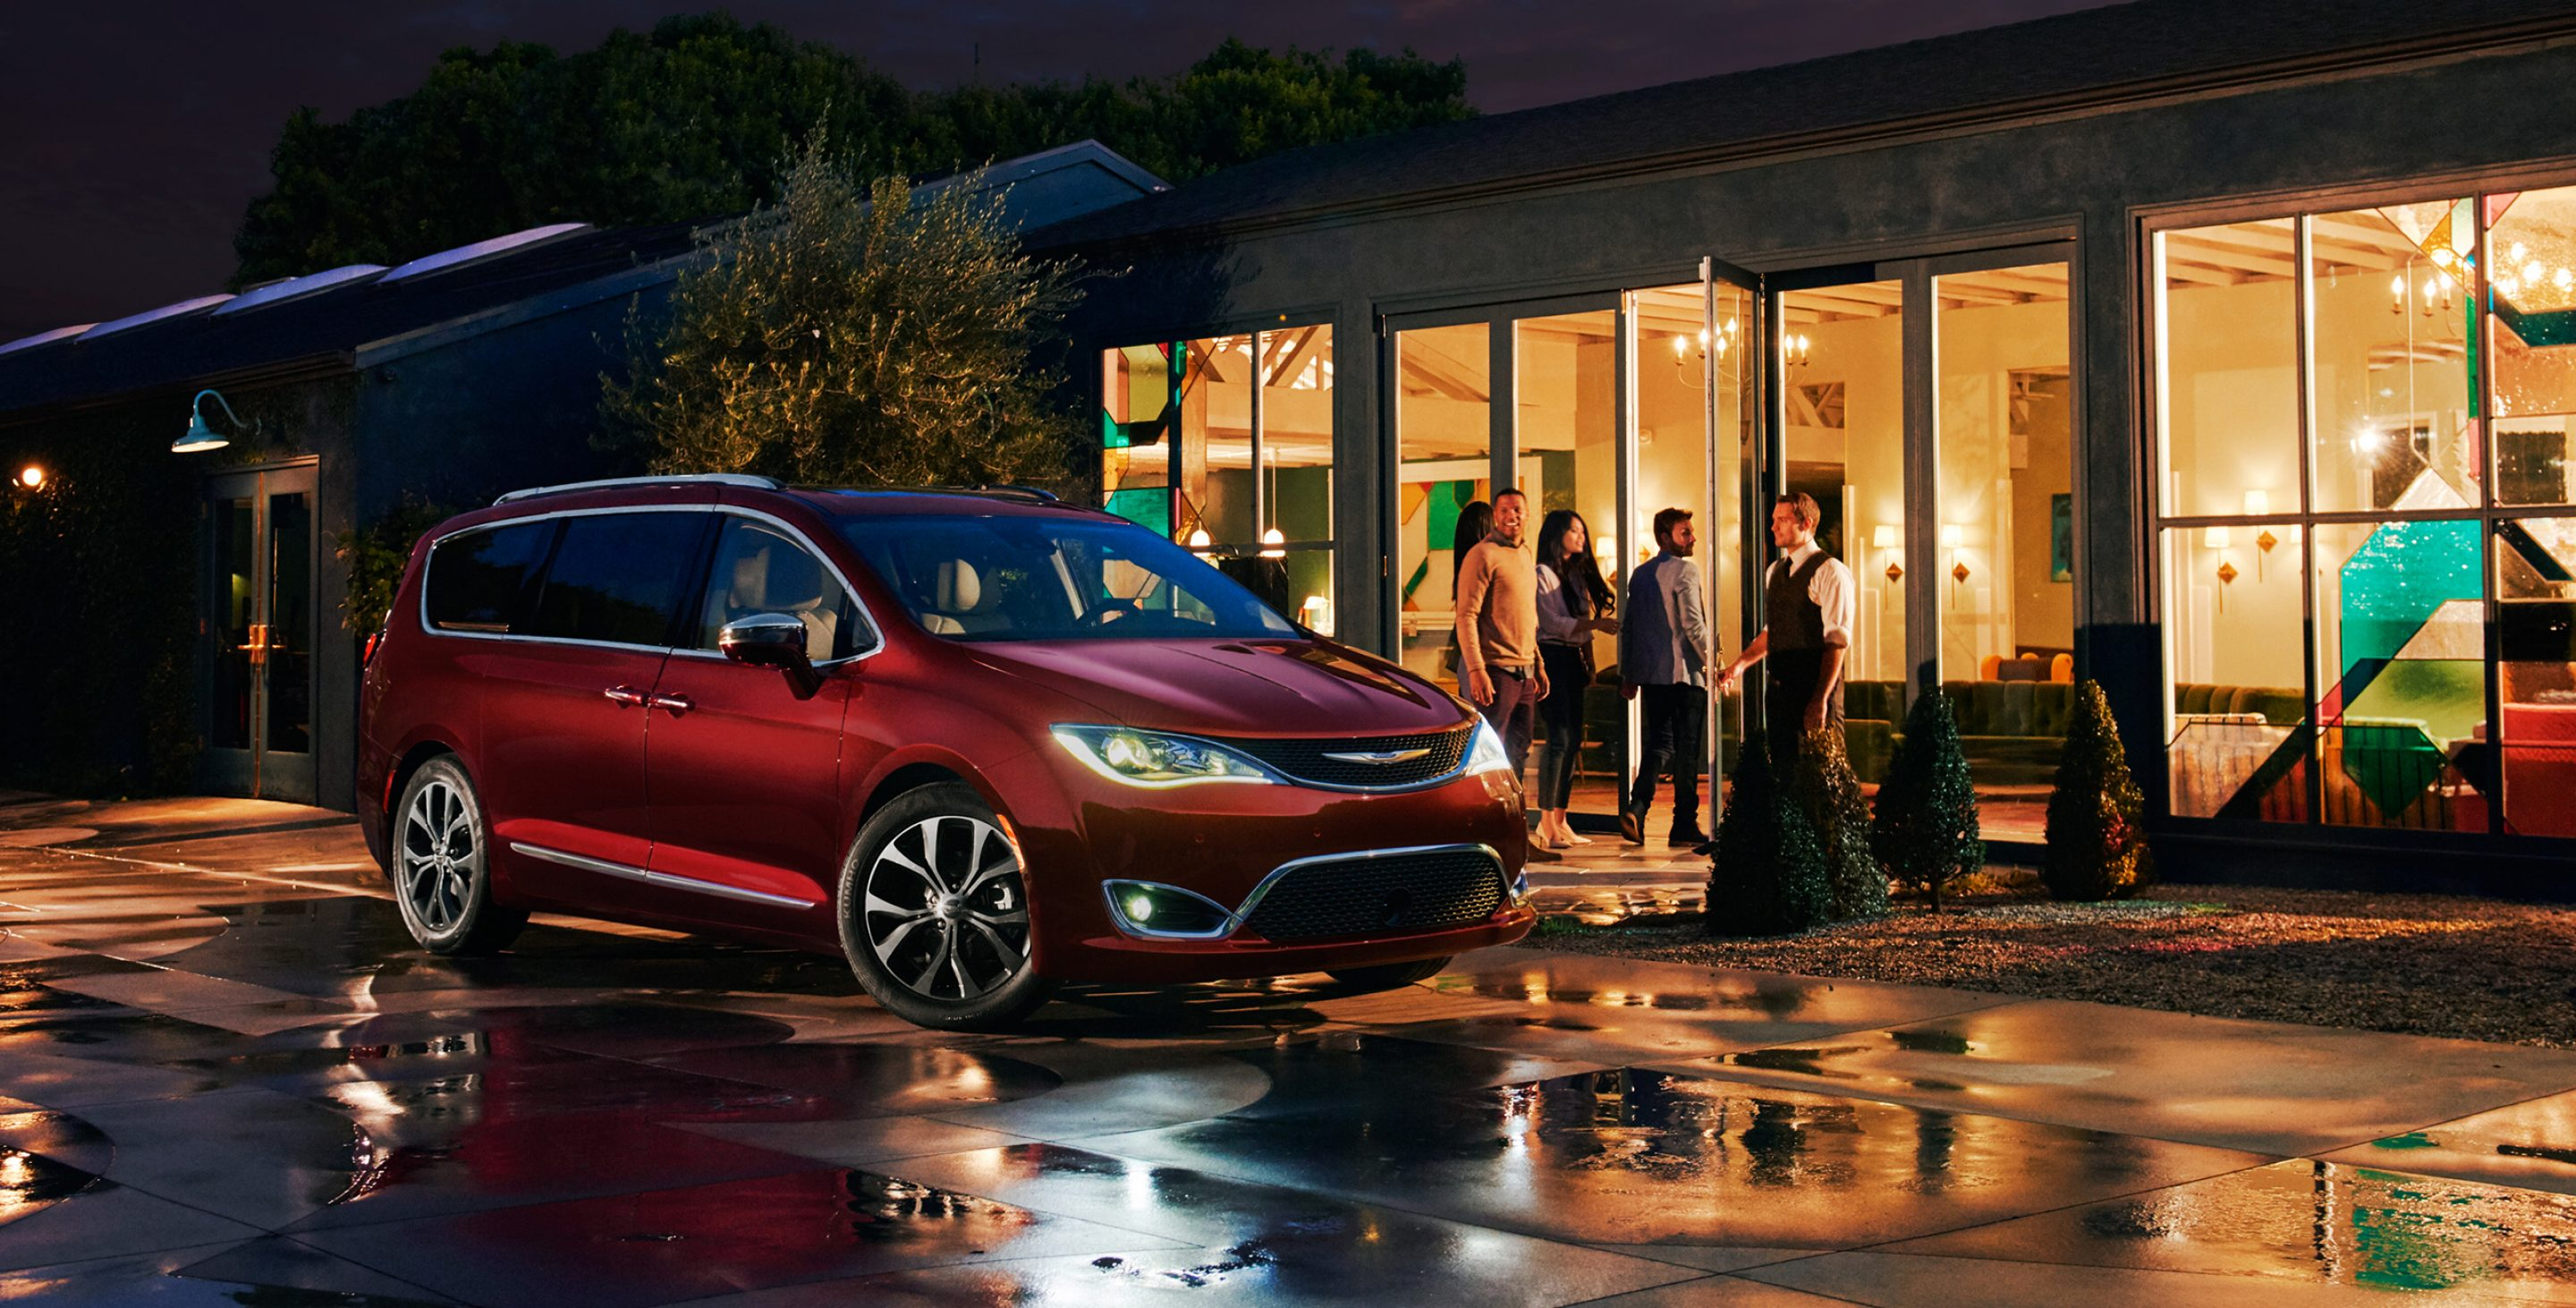 2017-chrysler-pacifica-gallery-exterior-6.jpg.image_.2880